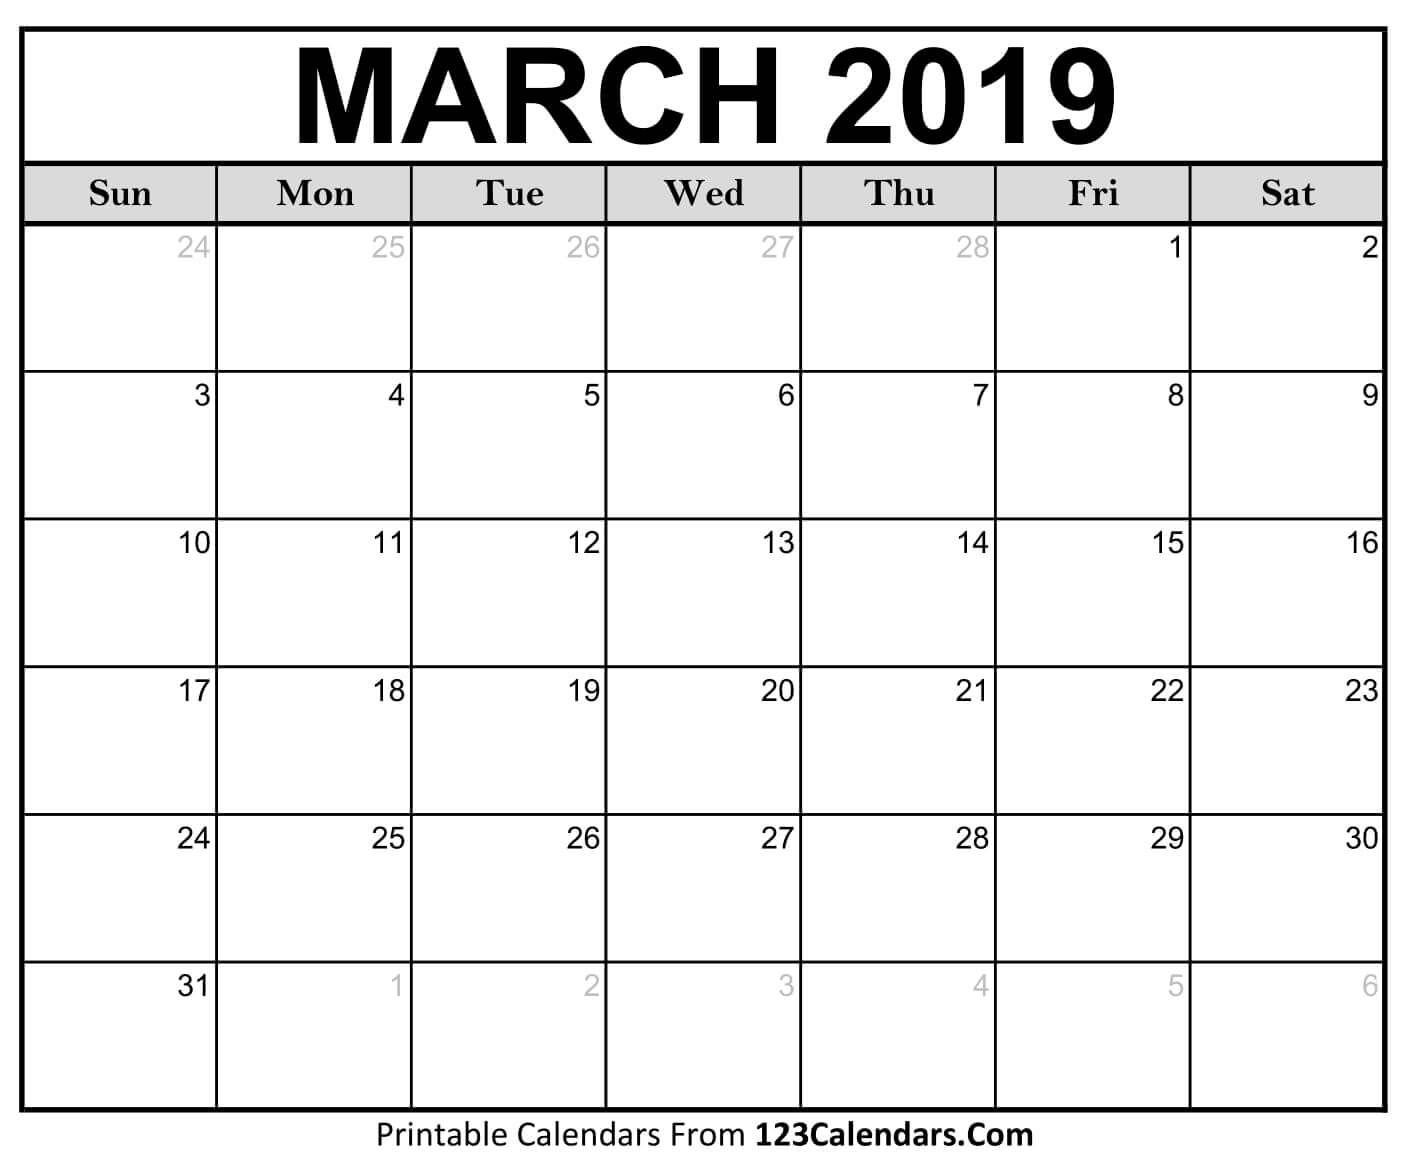 March 2021 Printable Calendar Word Excel Template Download Kalendarz